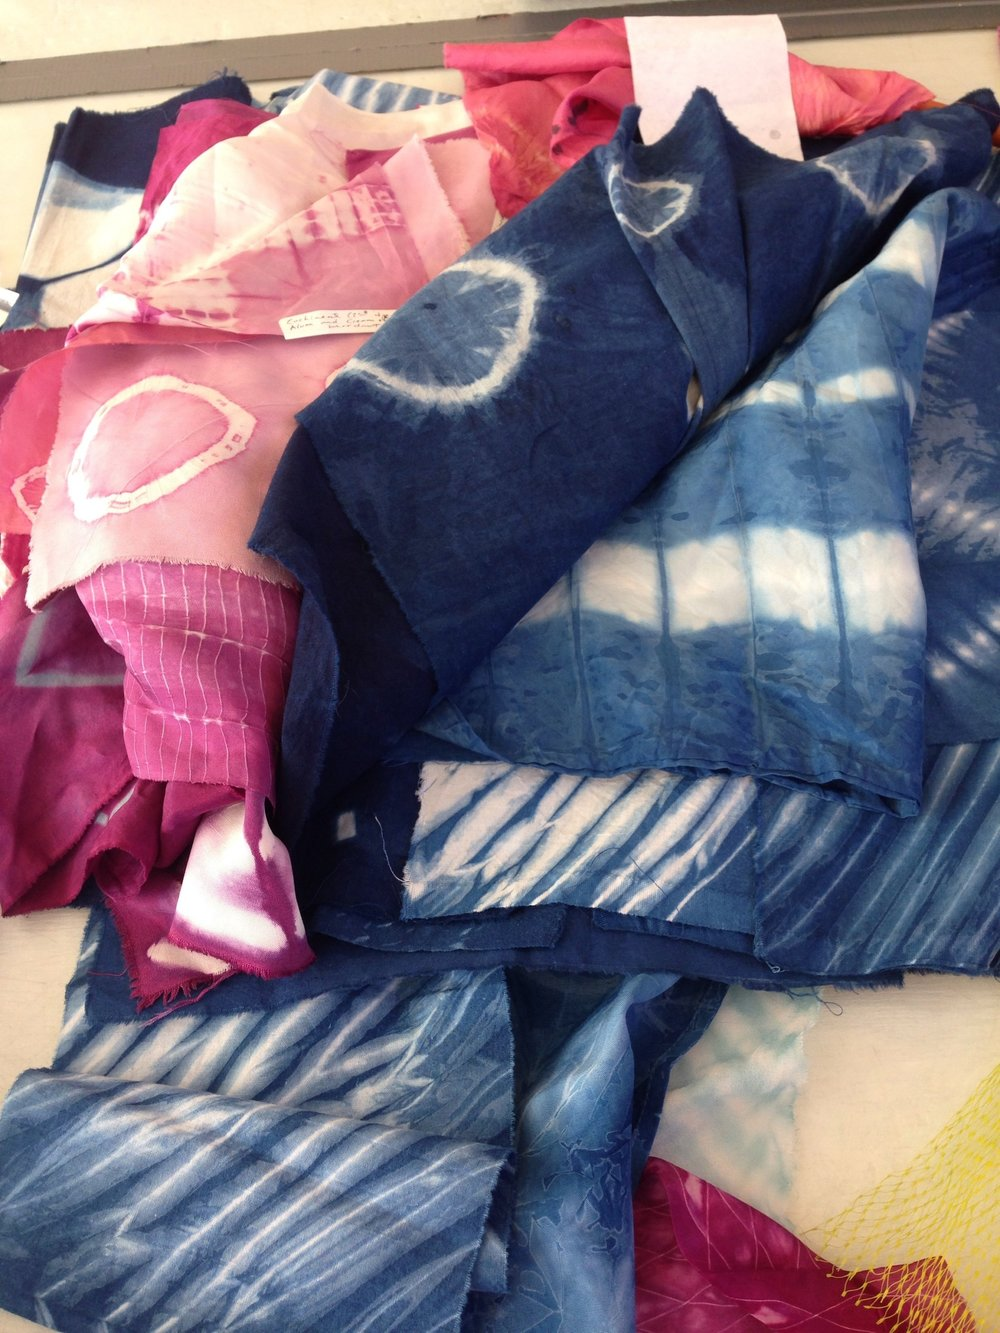 Samples dyed with indigo and cochineal from the Shibori scarf workshop